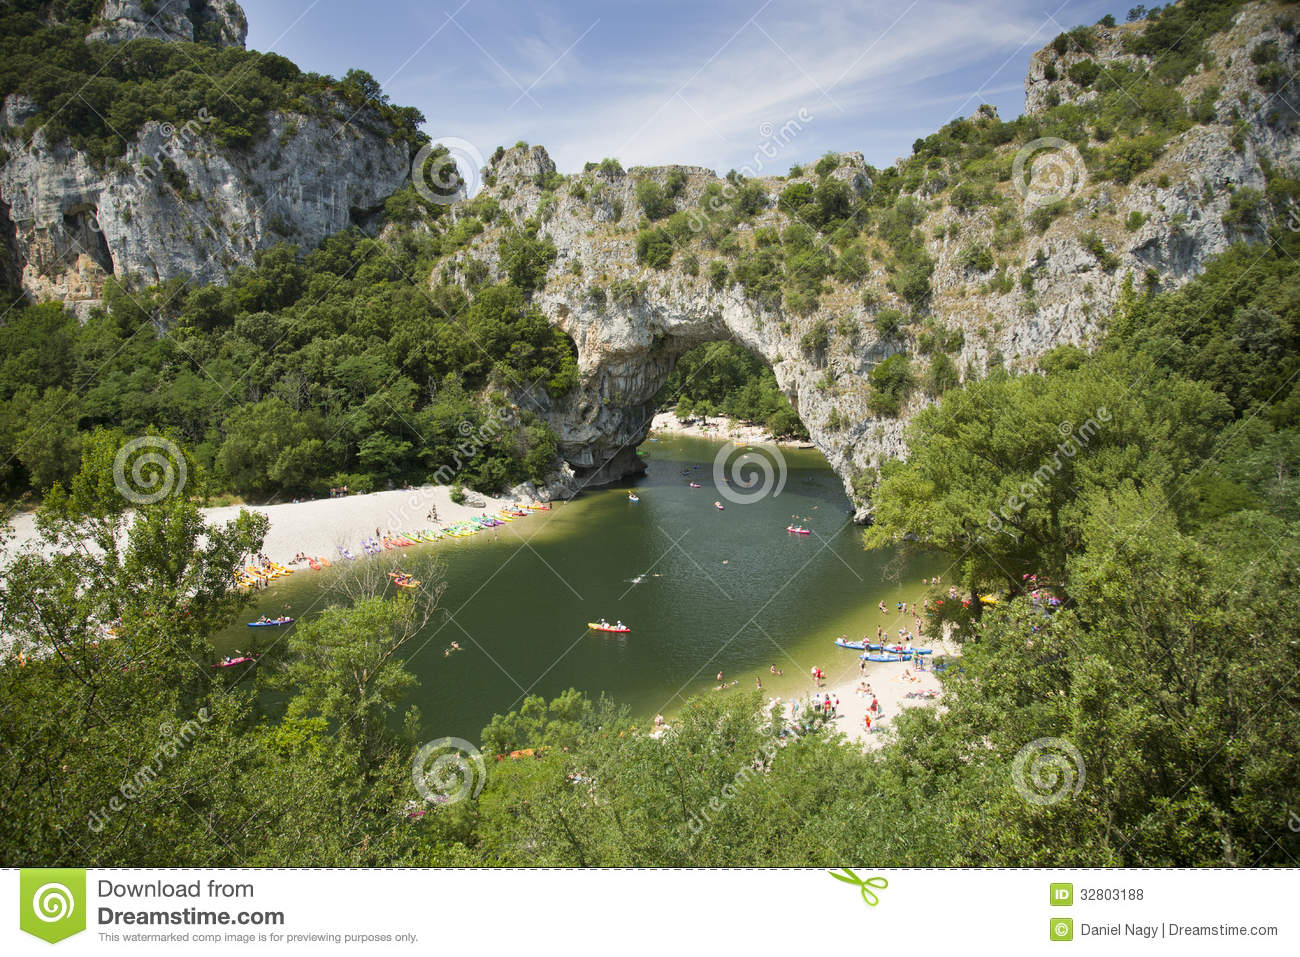 Vallon Pont D'Arc, A Natural Bridge In The Ardeche France Royalty.